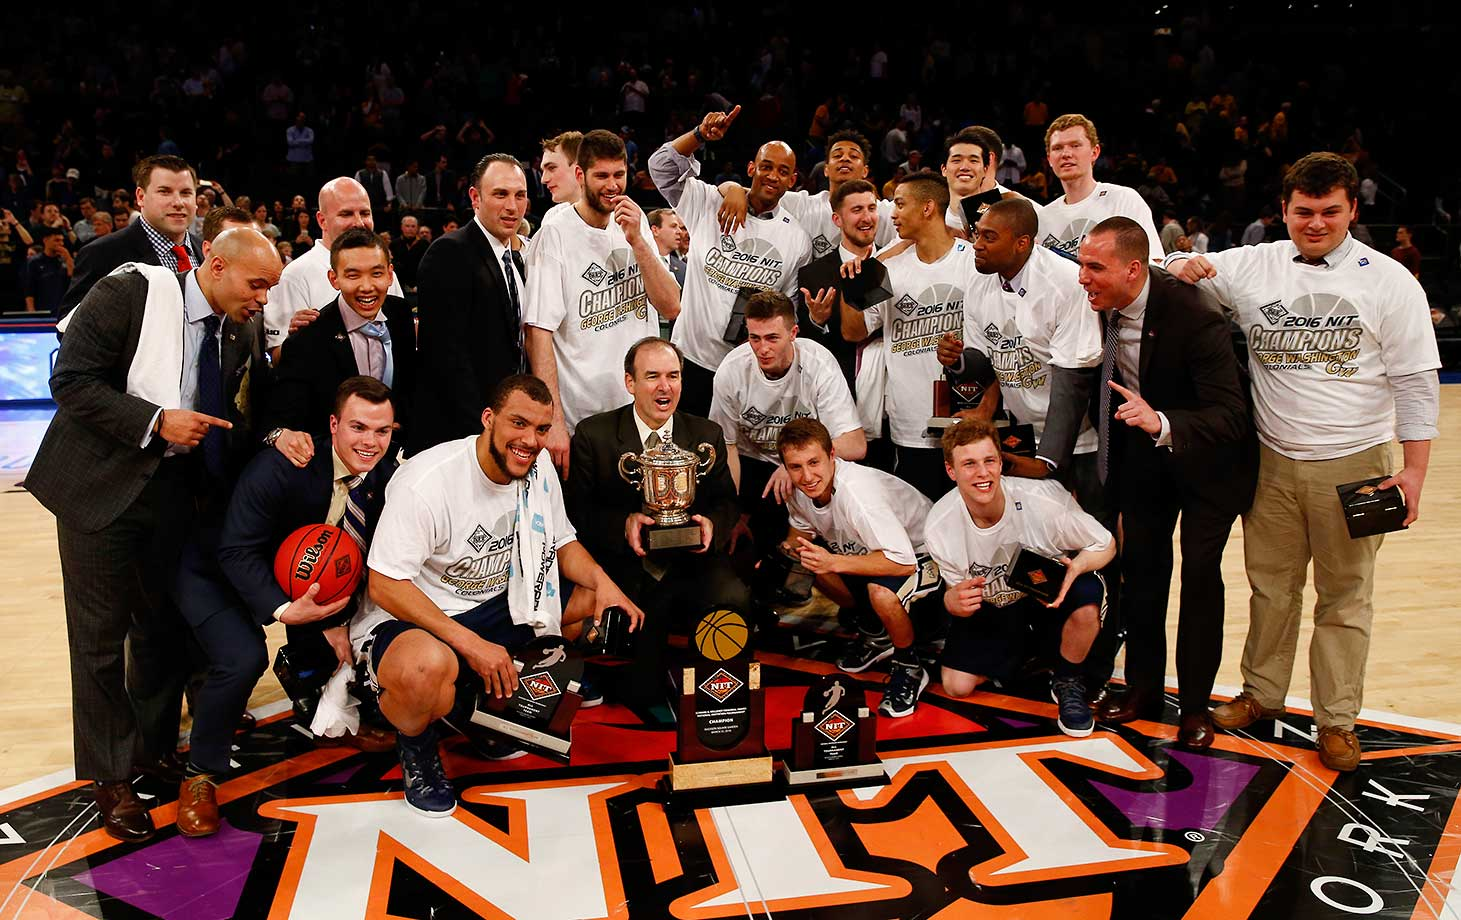 The happy George Washington Colonials after their victory over the Valparaiso Crusaders in the NIT Championship game at Madison Square Garden.